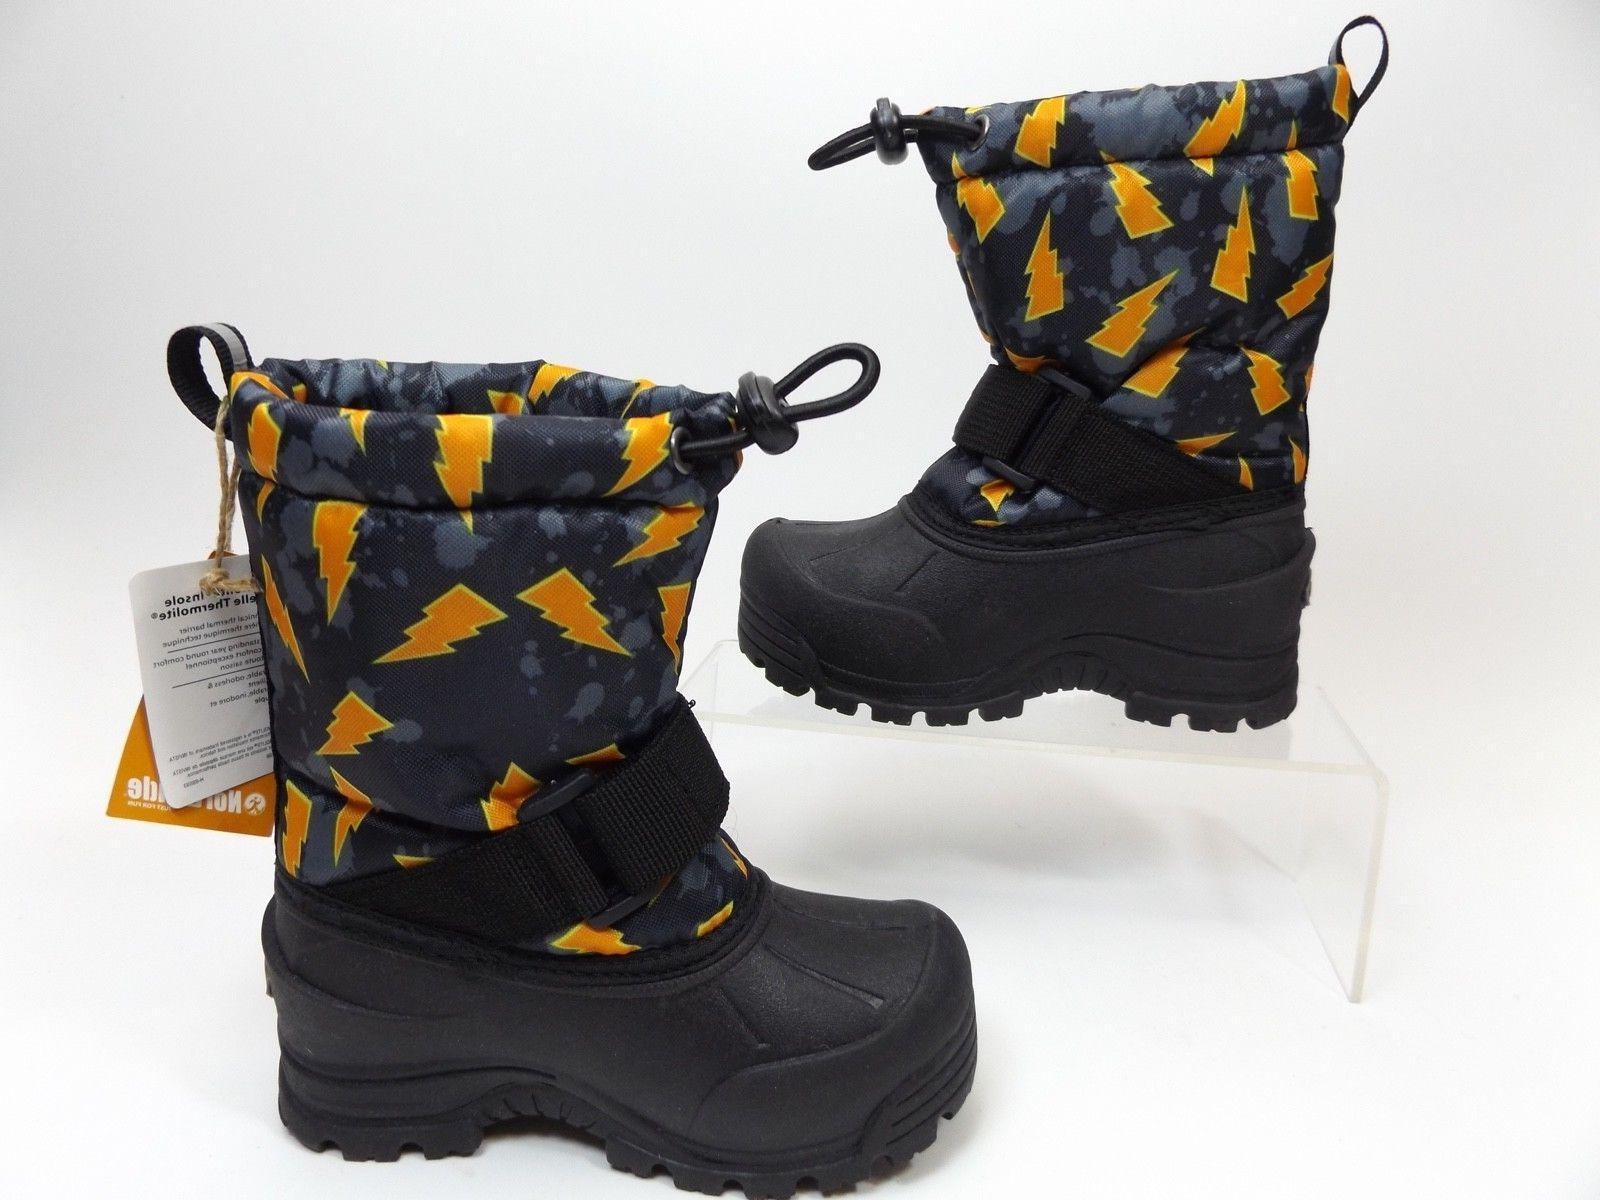 Northside ICICLE Winter Boots Black, THERMOLIT NEW 8960